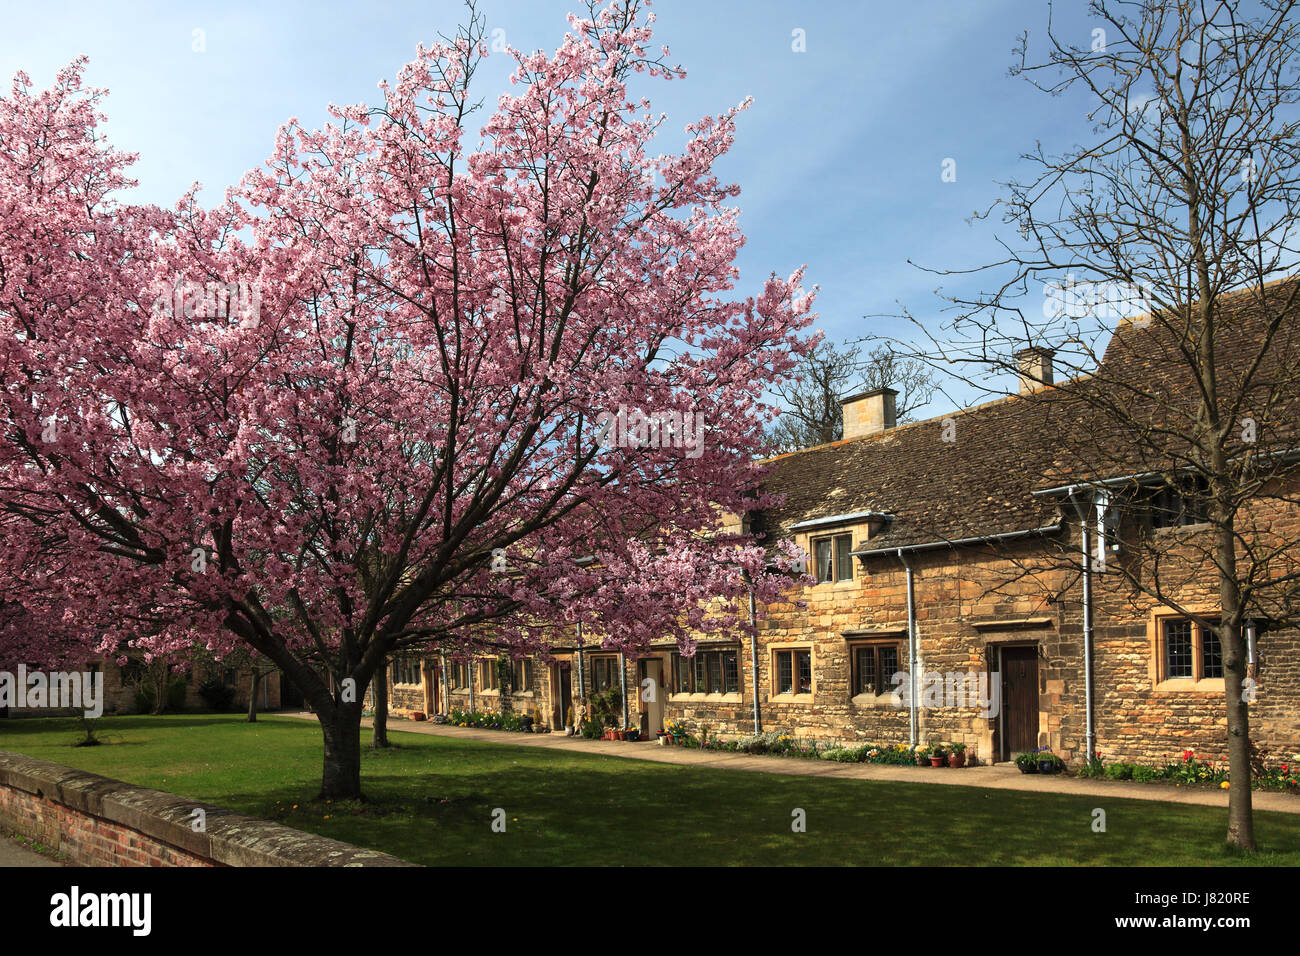 Spring Cherry Trees, Lord Burghleys Hospital Almshouses, Stamford Town, Lincolnshire England Britain UK - Stock Image